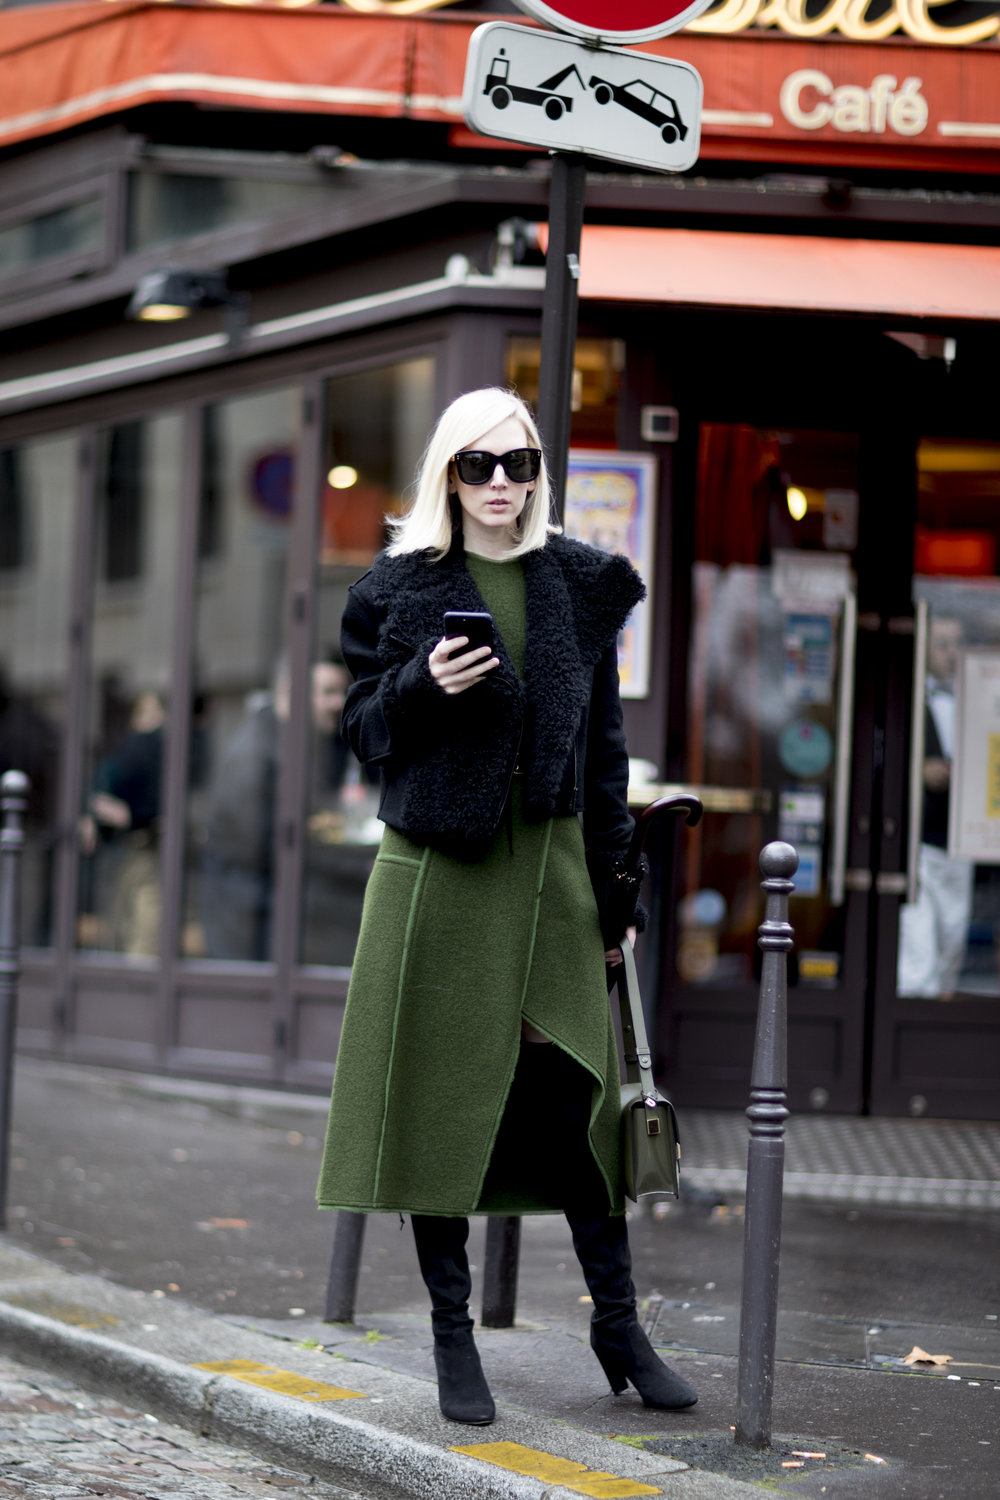 Fashion_Week_Streets_0217_PRS_FWS_07_060_hr.jpg